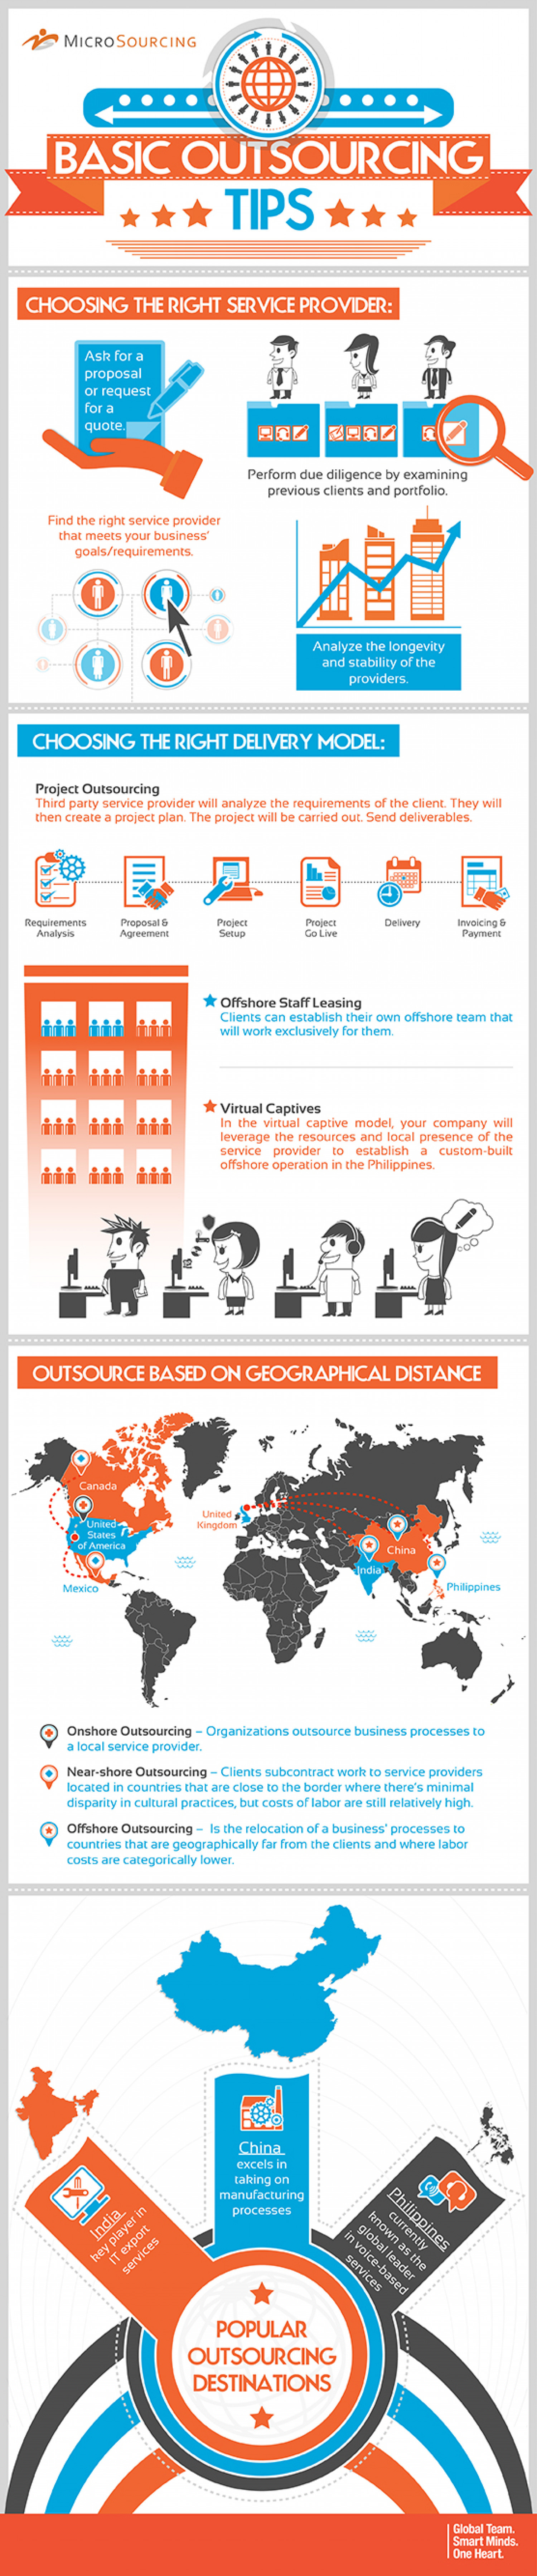 Basic Outsourcing Tips Infographic